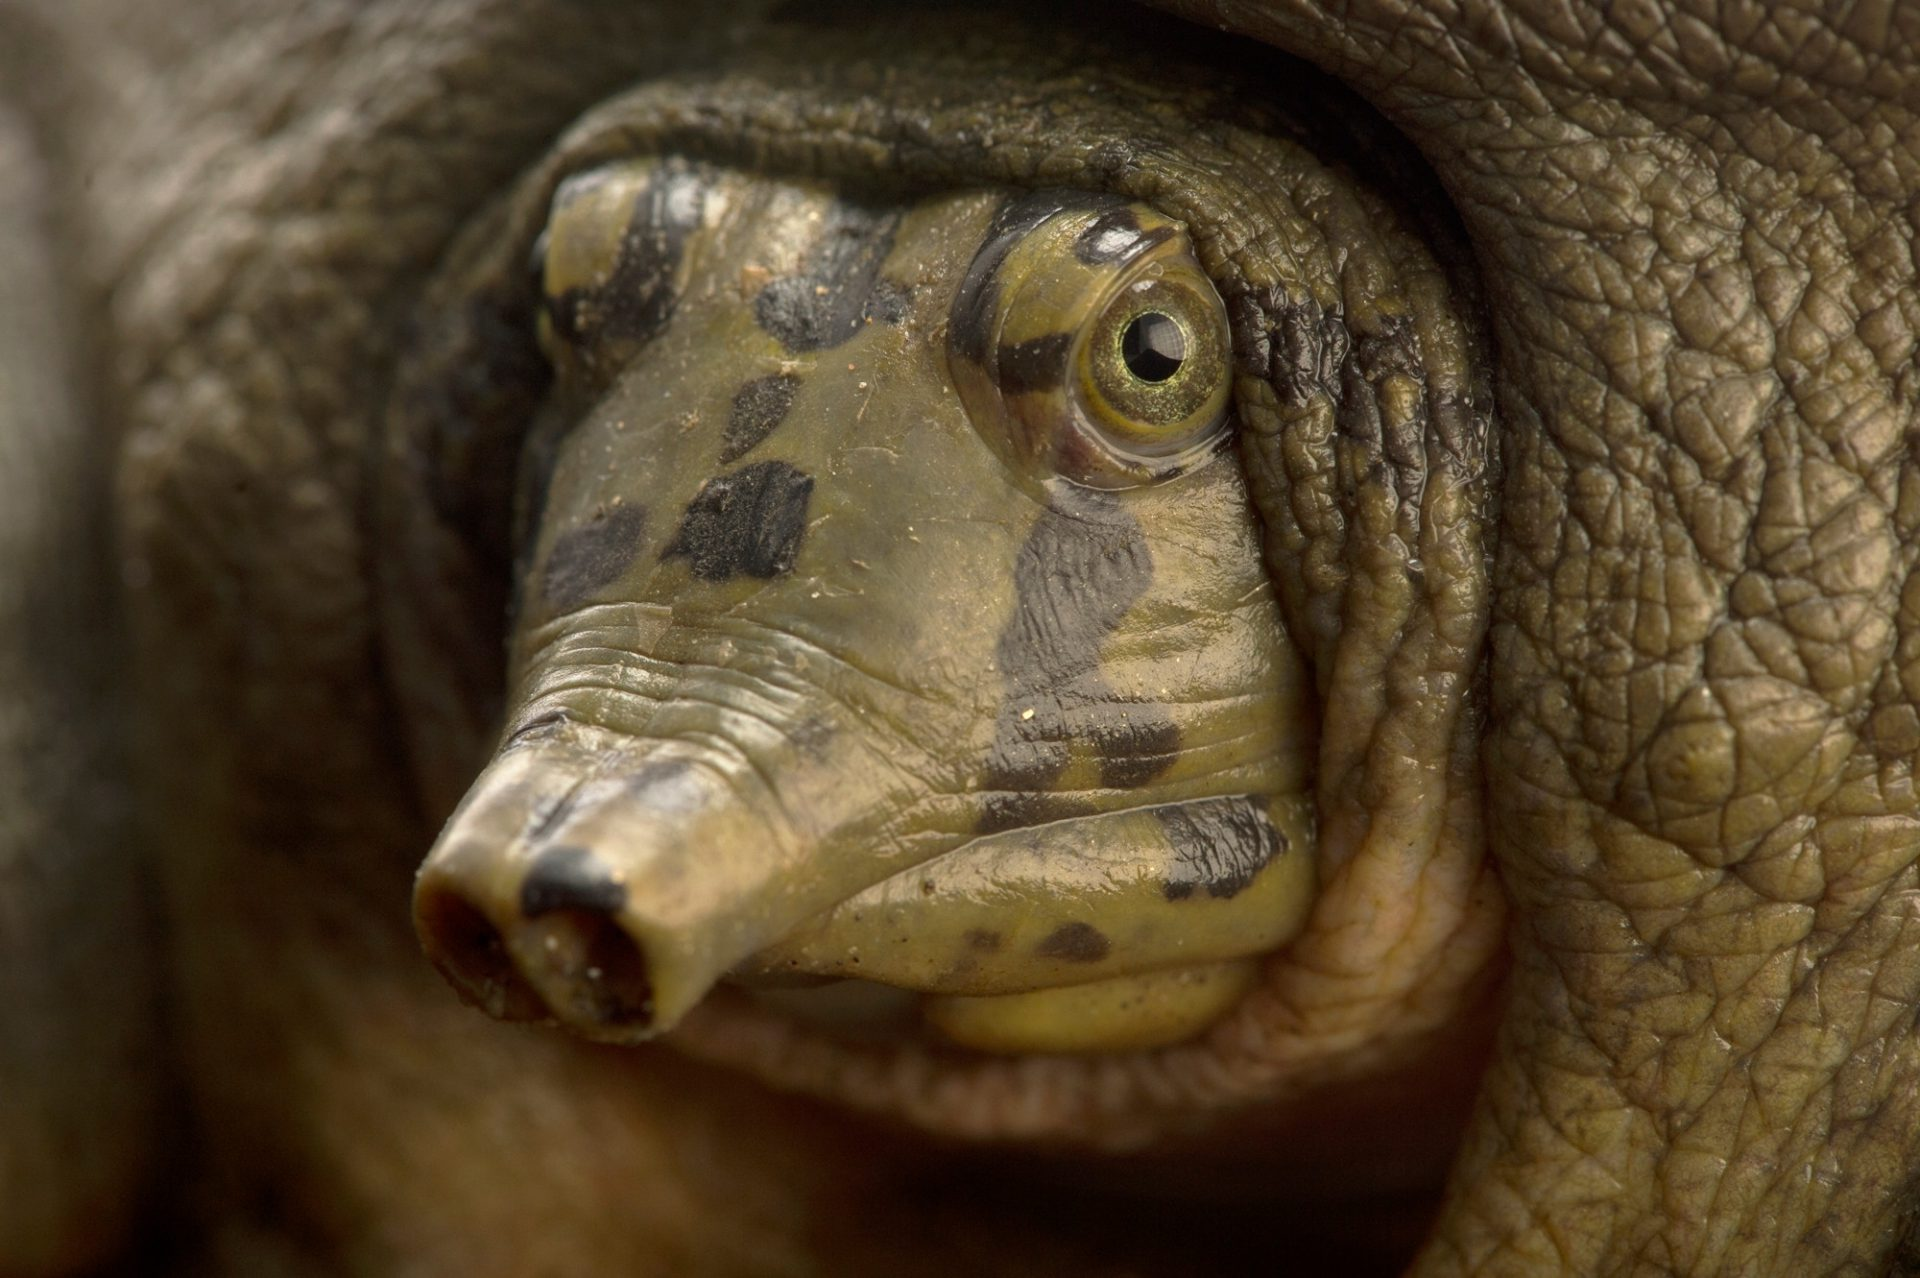 Photo: Ganges soft shelled turtle (Nilssonia gangetica) at the Gharial and Turtle Rehabilitation Center in Lucknow, India.